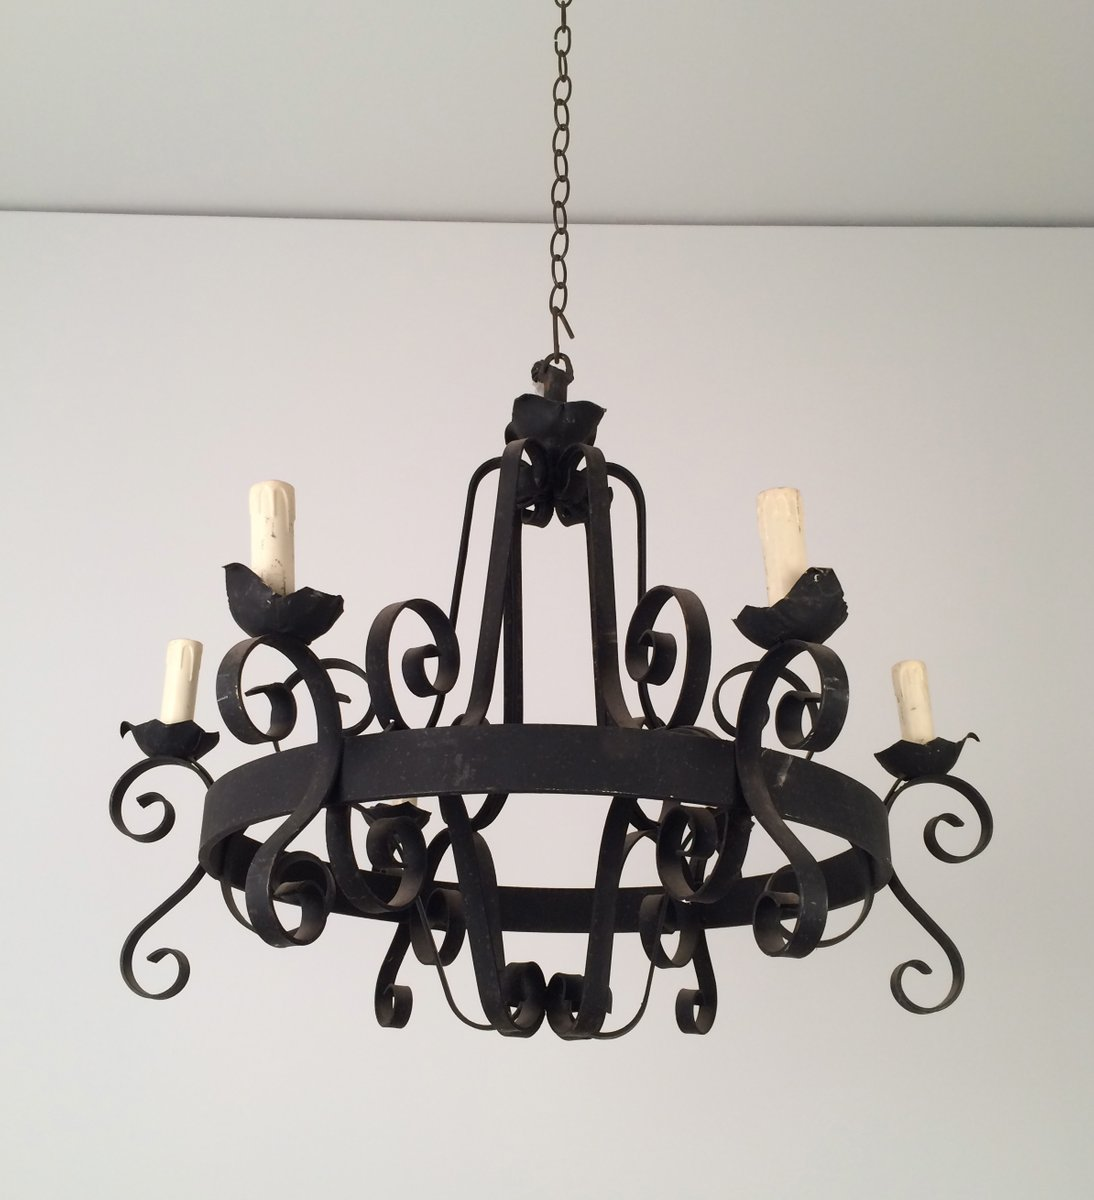 Eight arm wrought iron chandelier 1960s for sale at pamono - Classic wrought iron chandeliers adding more elegance in the room ...